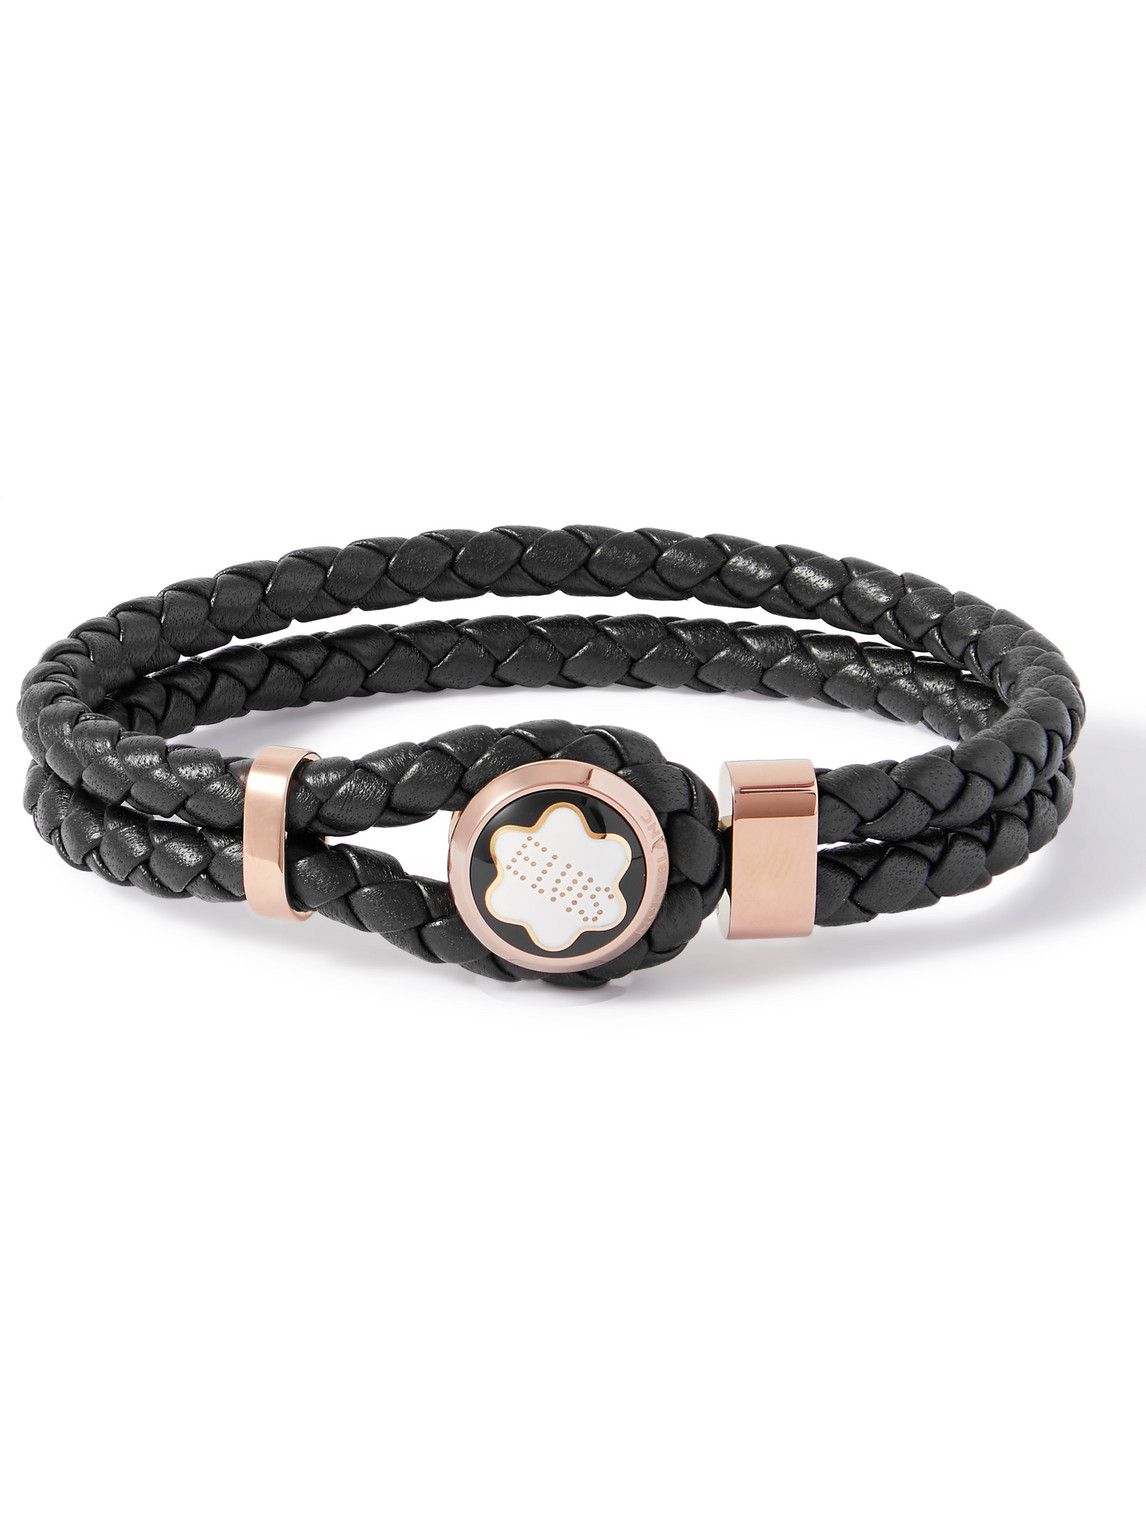 Montblanc Woven Leather, Gold-tone And Enamel Bracelet In Black